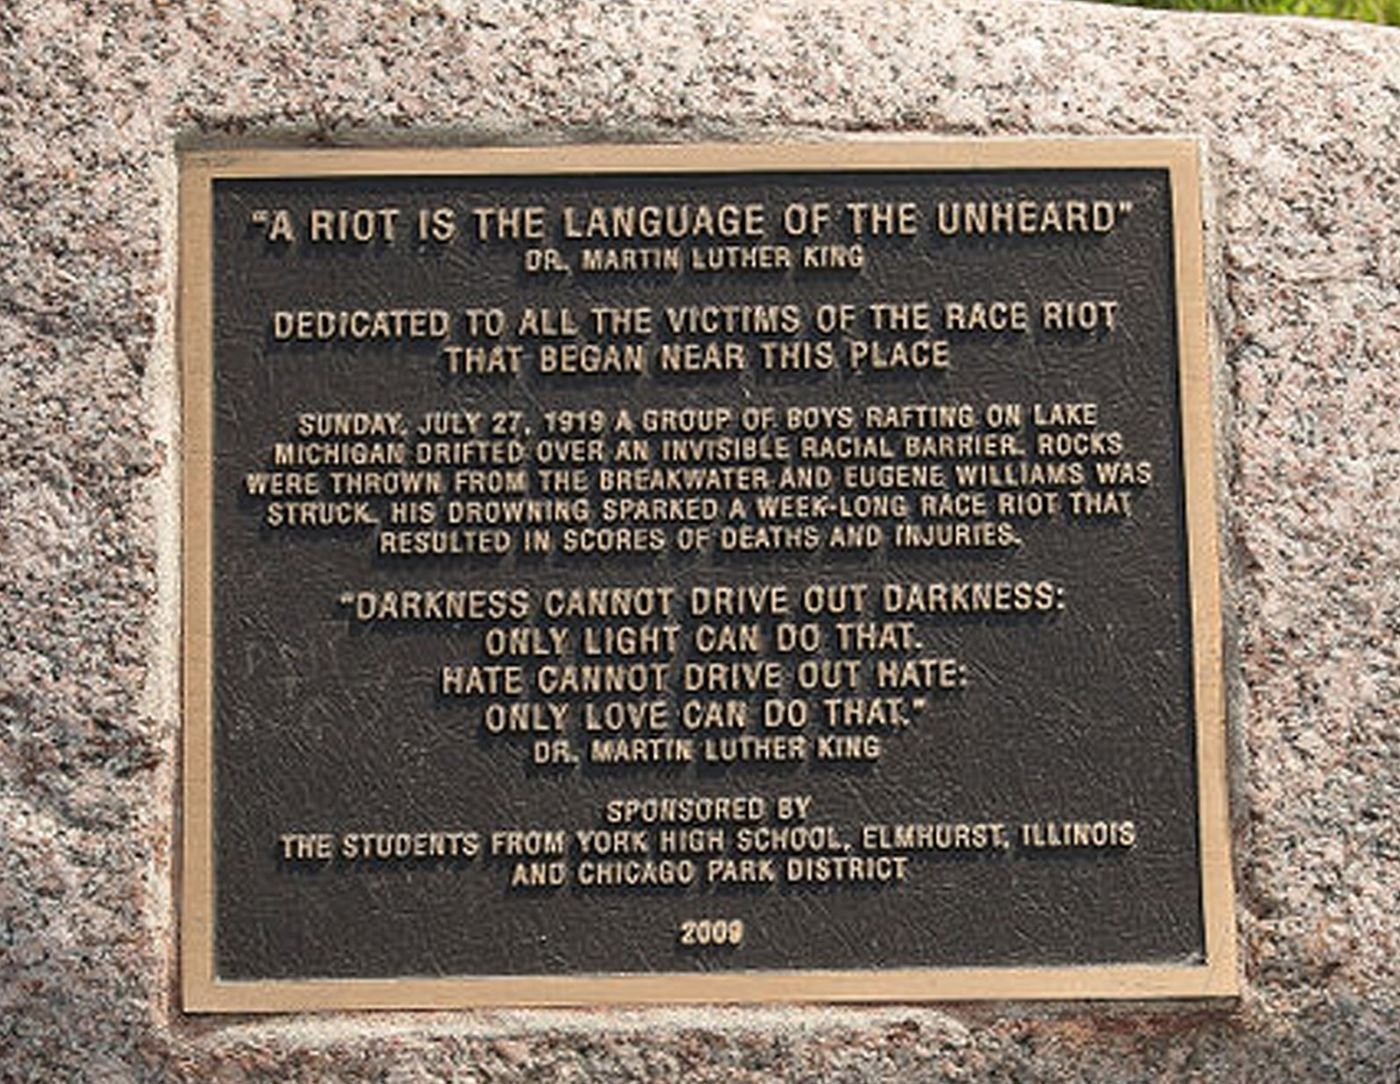 This small plaque is located on a stone and was dedicated in 2000. It is important to note that the selected quote from MLK Jr. was in reference to protests in the 1960s.